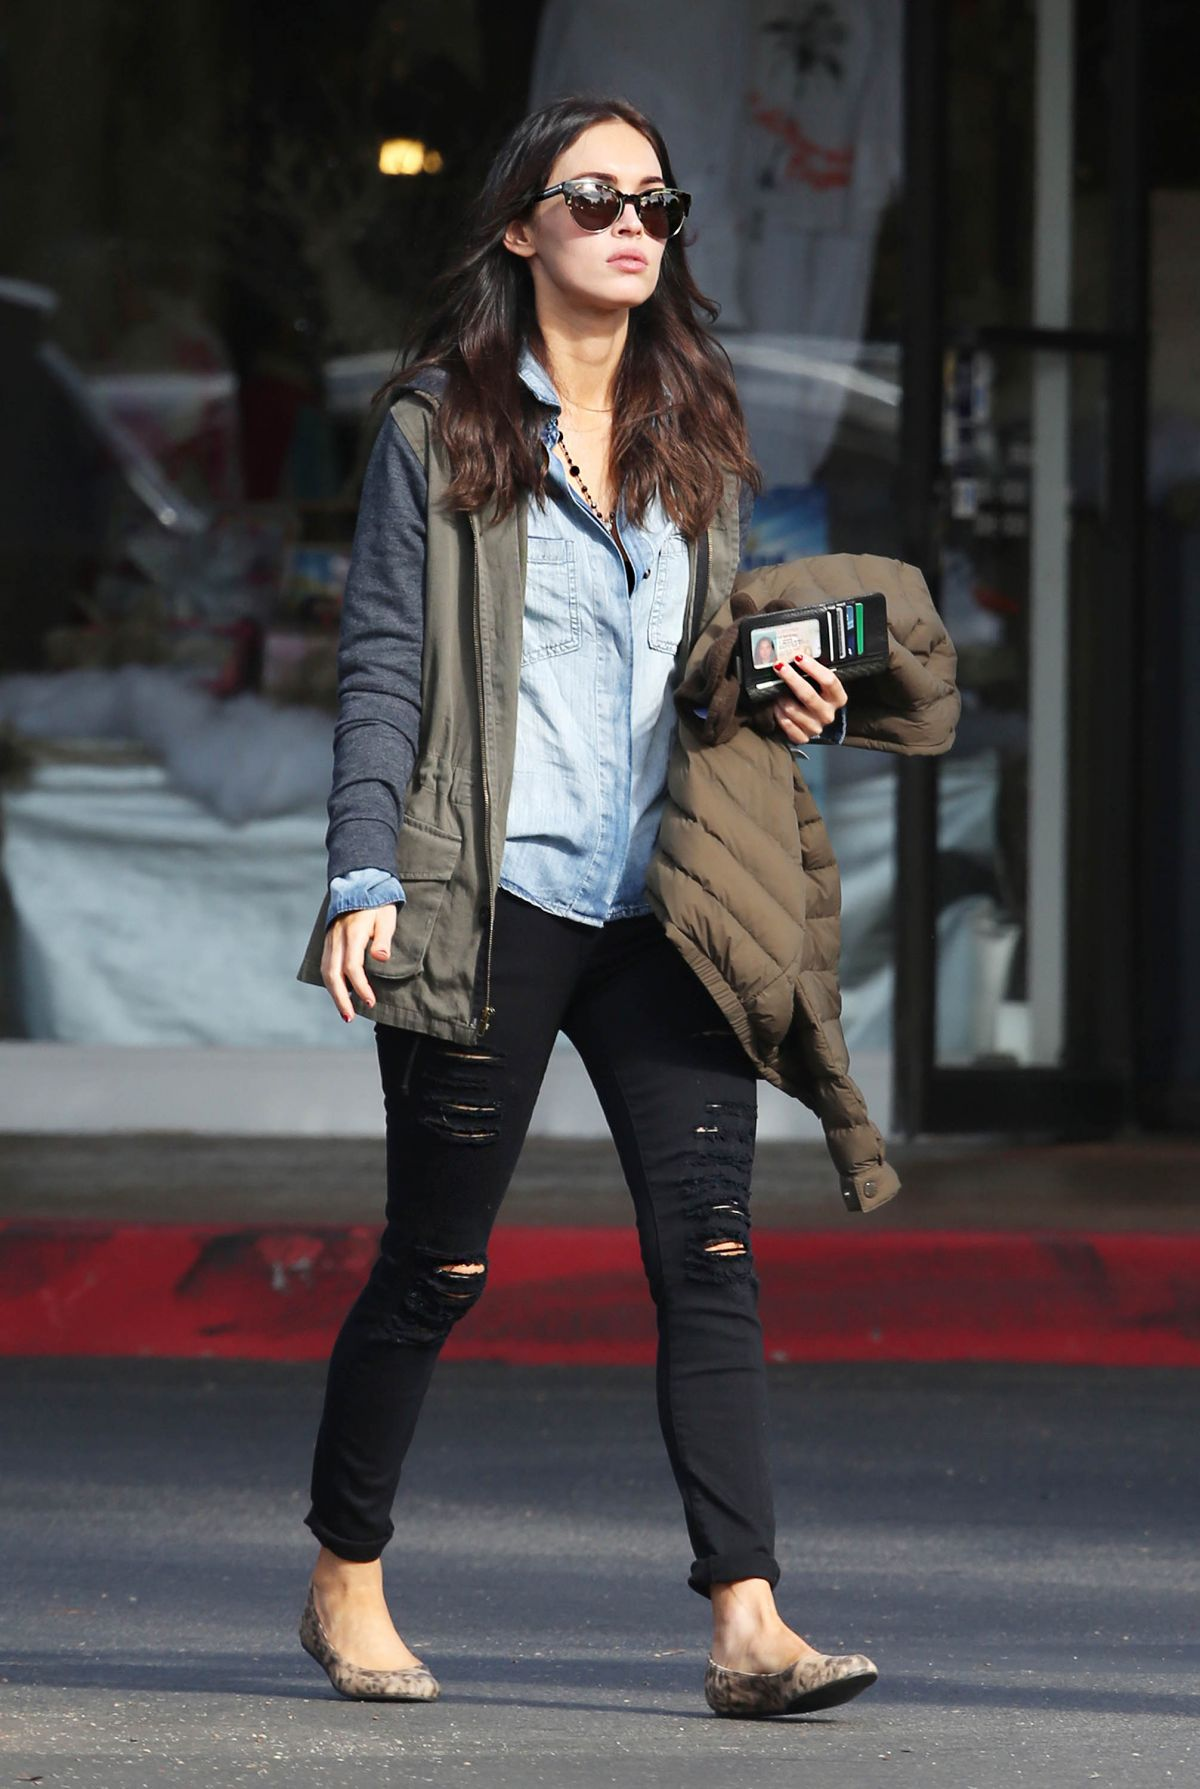 Megan Fox Seen Out & About In LA